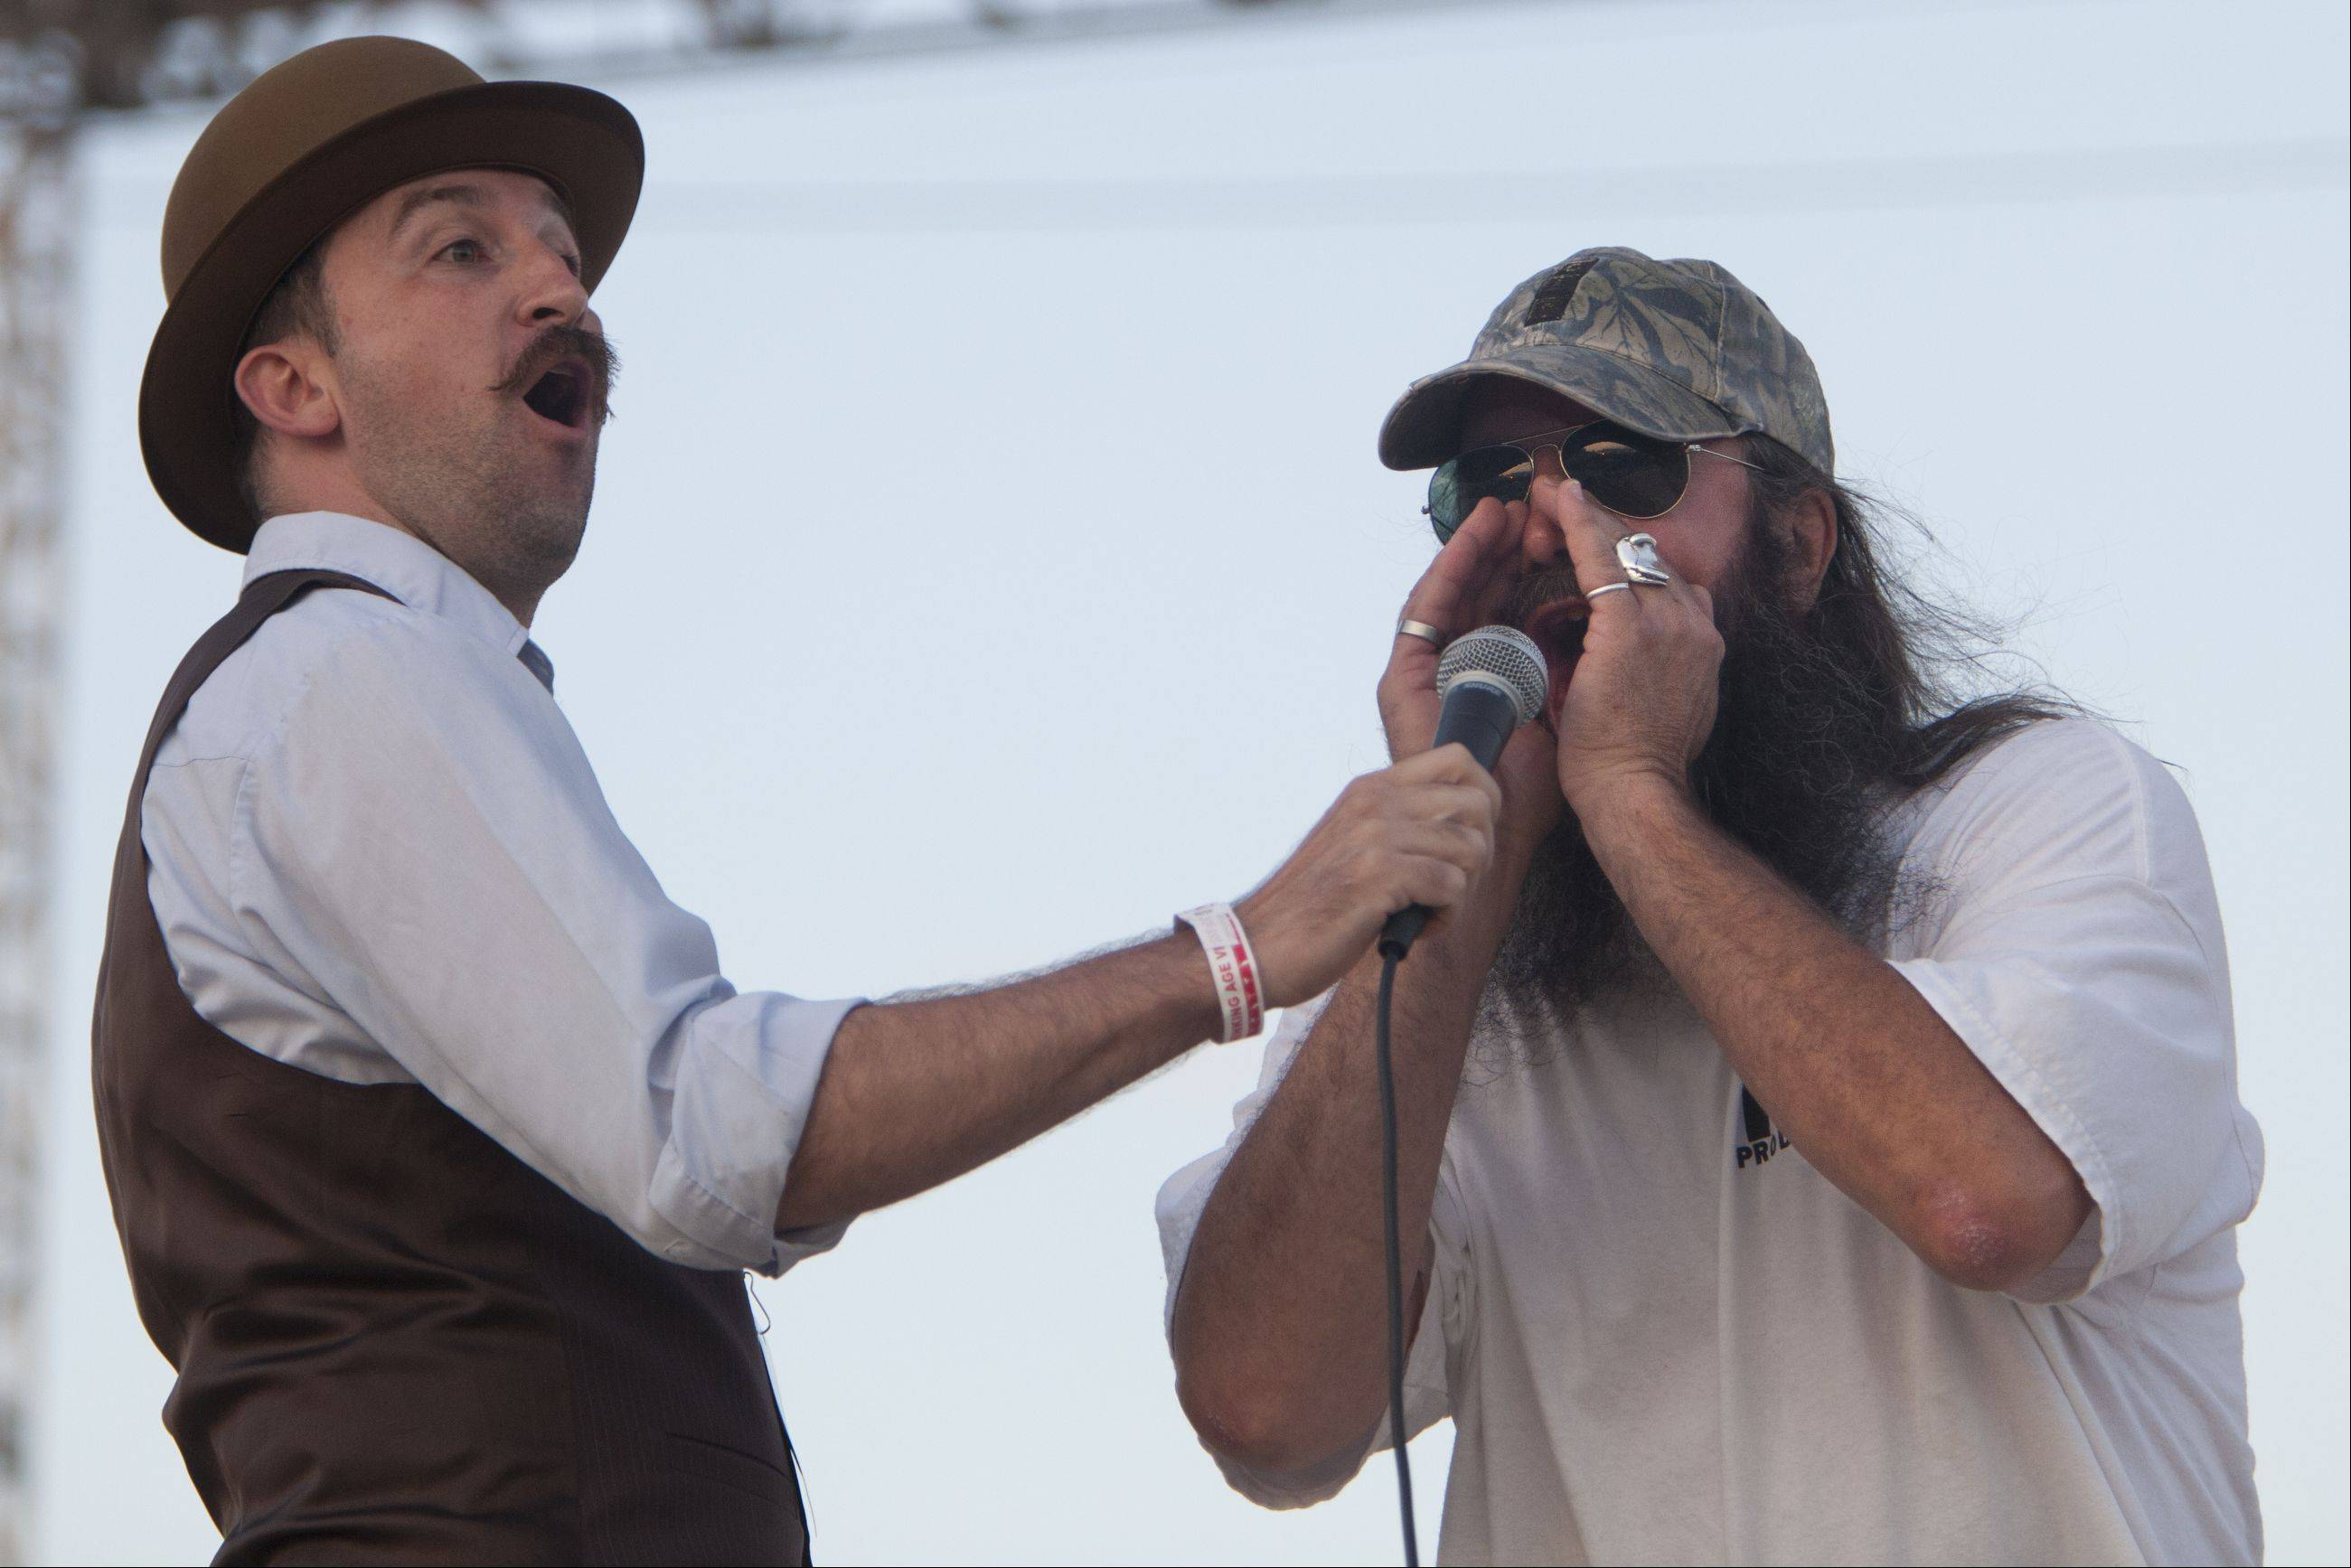 Tom Bernard of Mundelein attempts to call Sasquatch on Friday night as emcee Matt Campbell opens his mouth in amazement at the Lake County Fair in Grayslake.